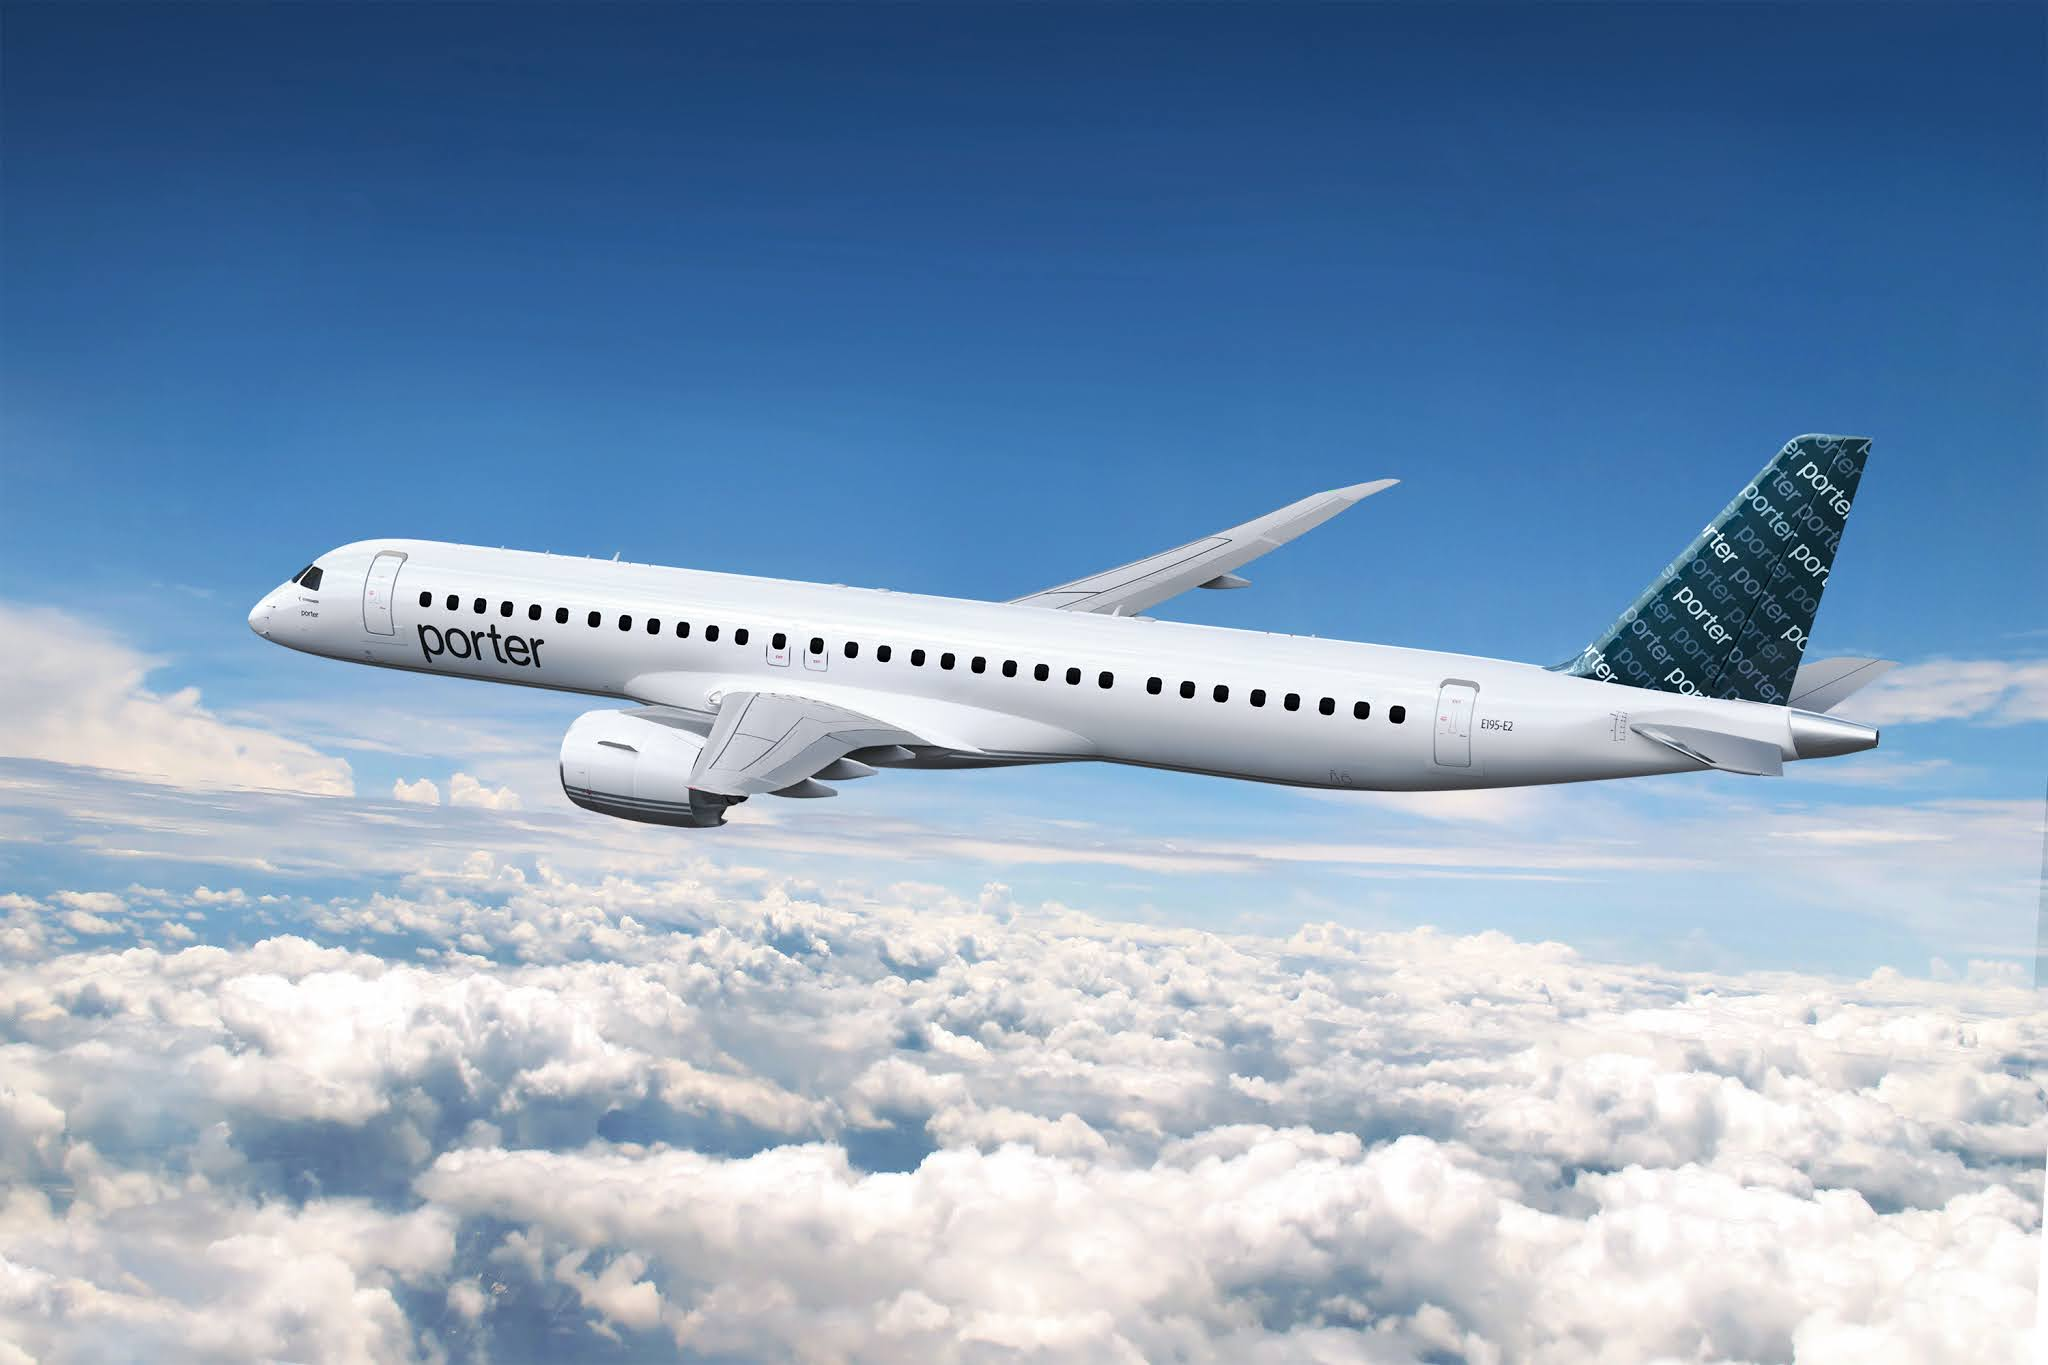 Embraer (ERJ) Signs Major Services and Support Agreement with Porter Airlines | MORE THAN FLY